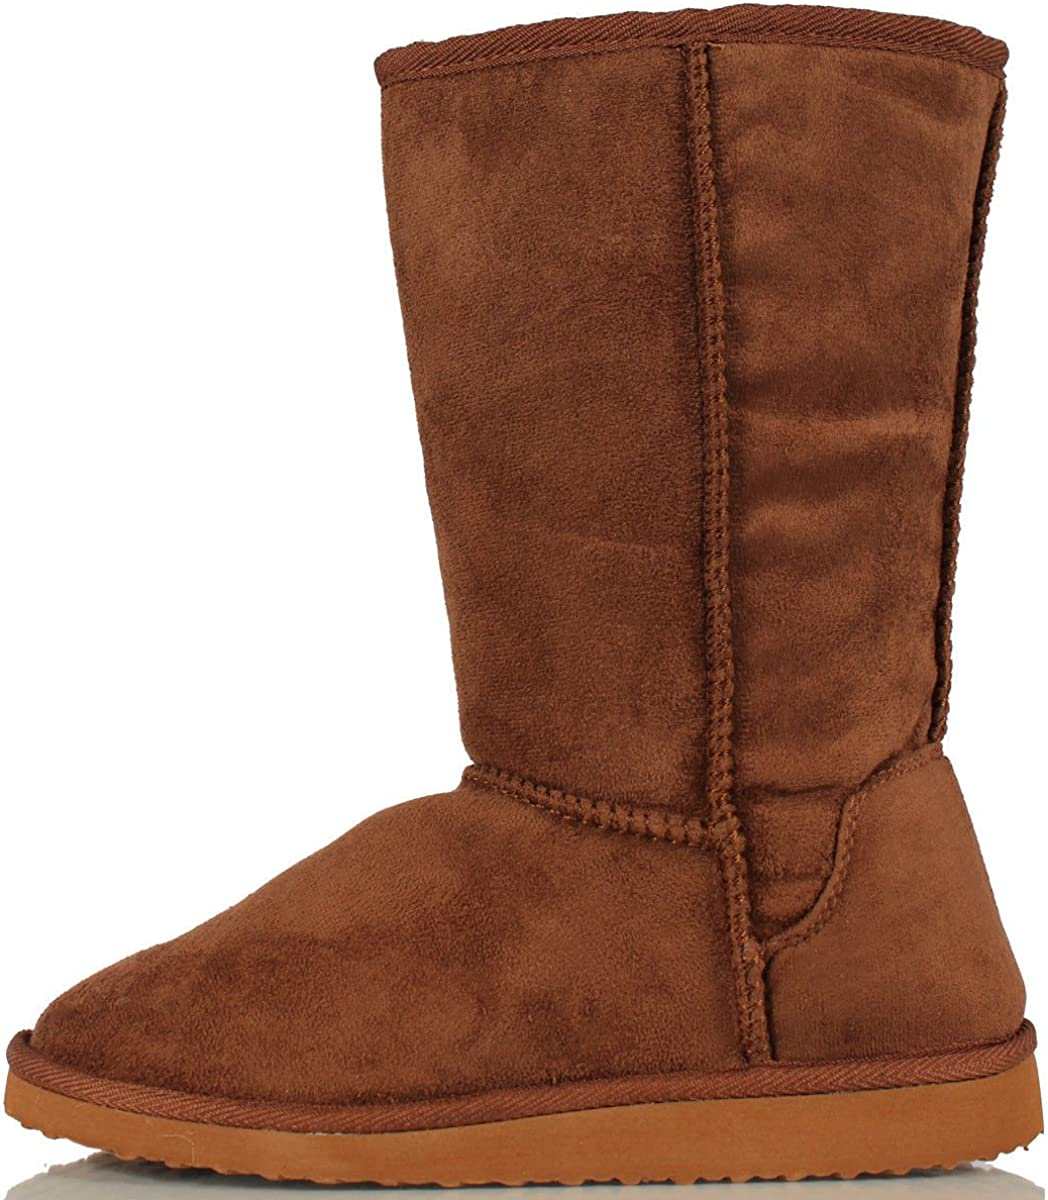 Soda D-Camel Faux Suede Mid Calf Comfy Eva Sole Padded Flat Boots